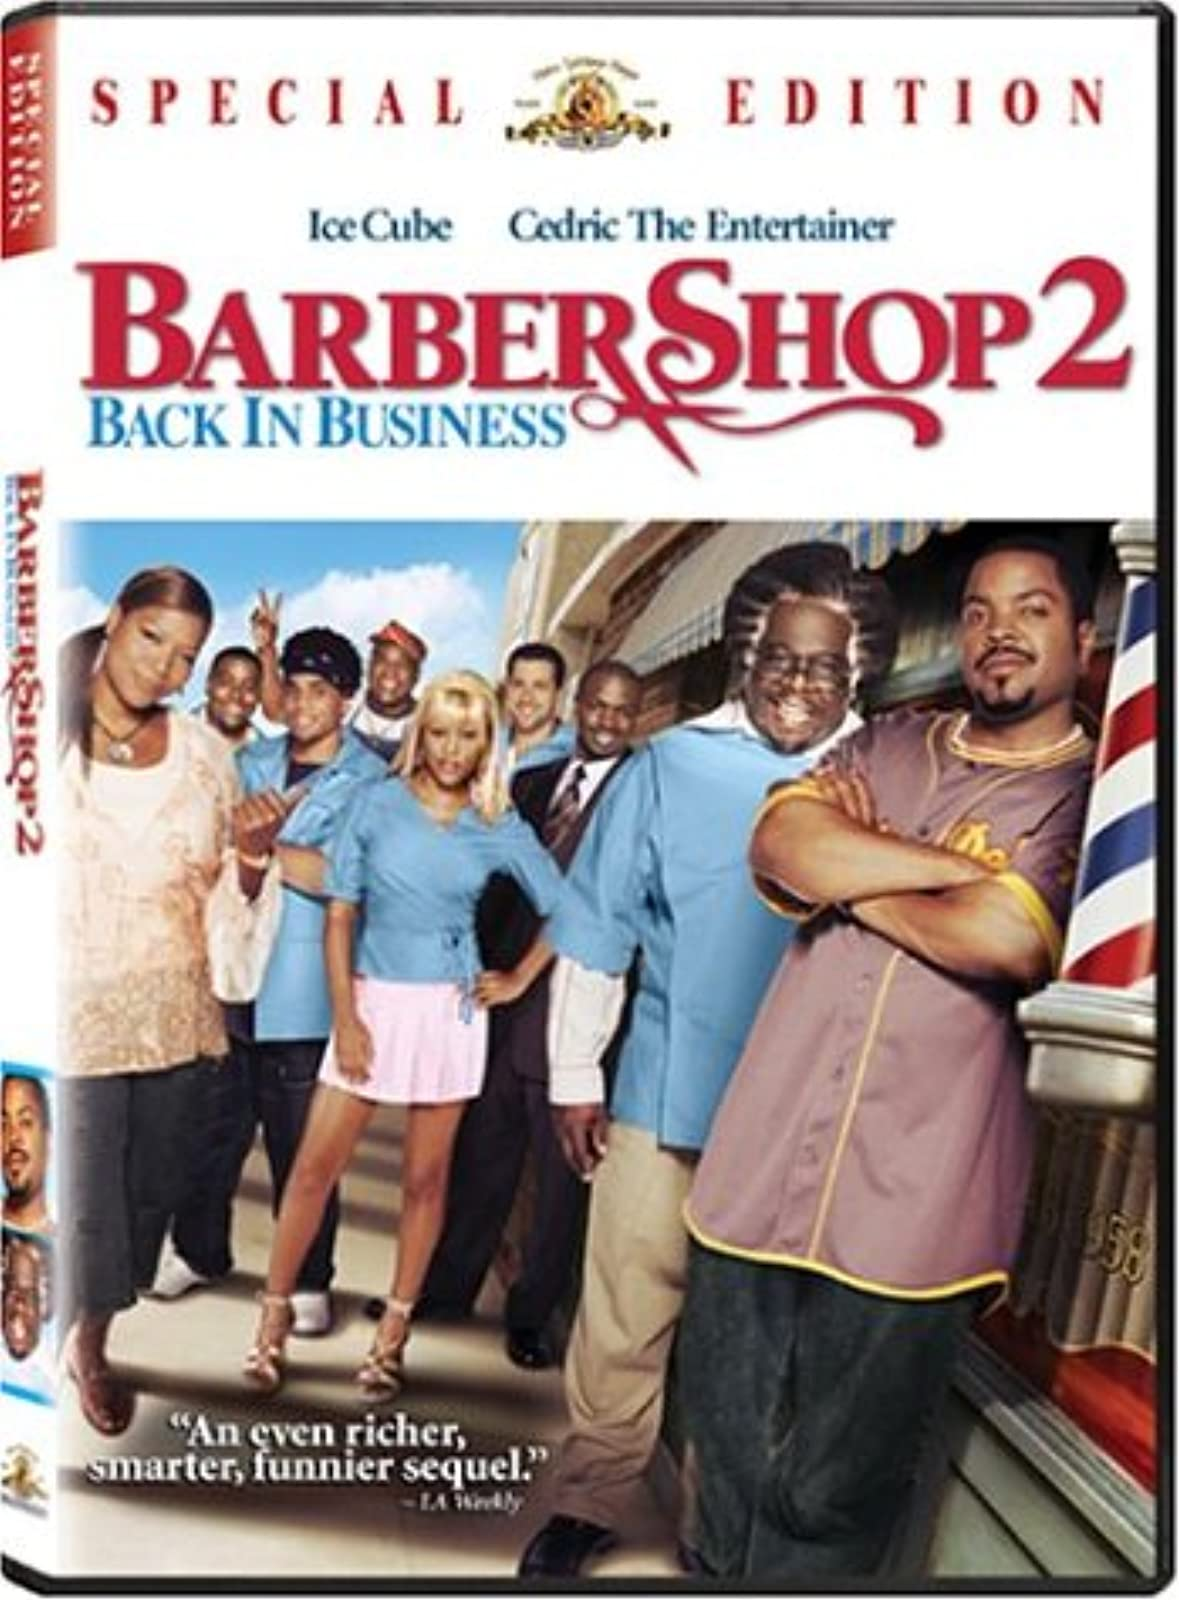 Barbershop 2: Back In Business On DVD With Ice Cube Comedy